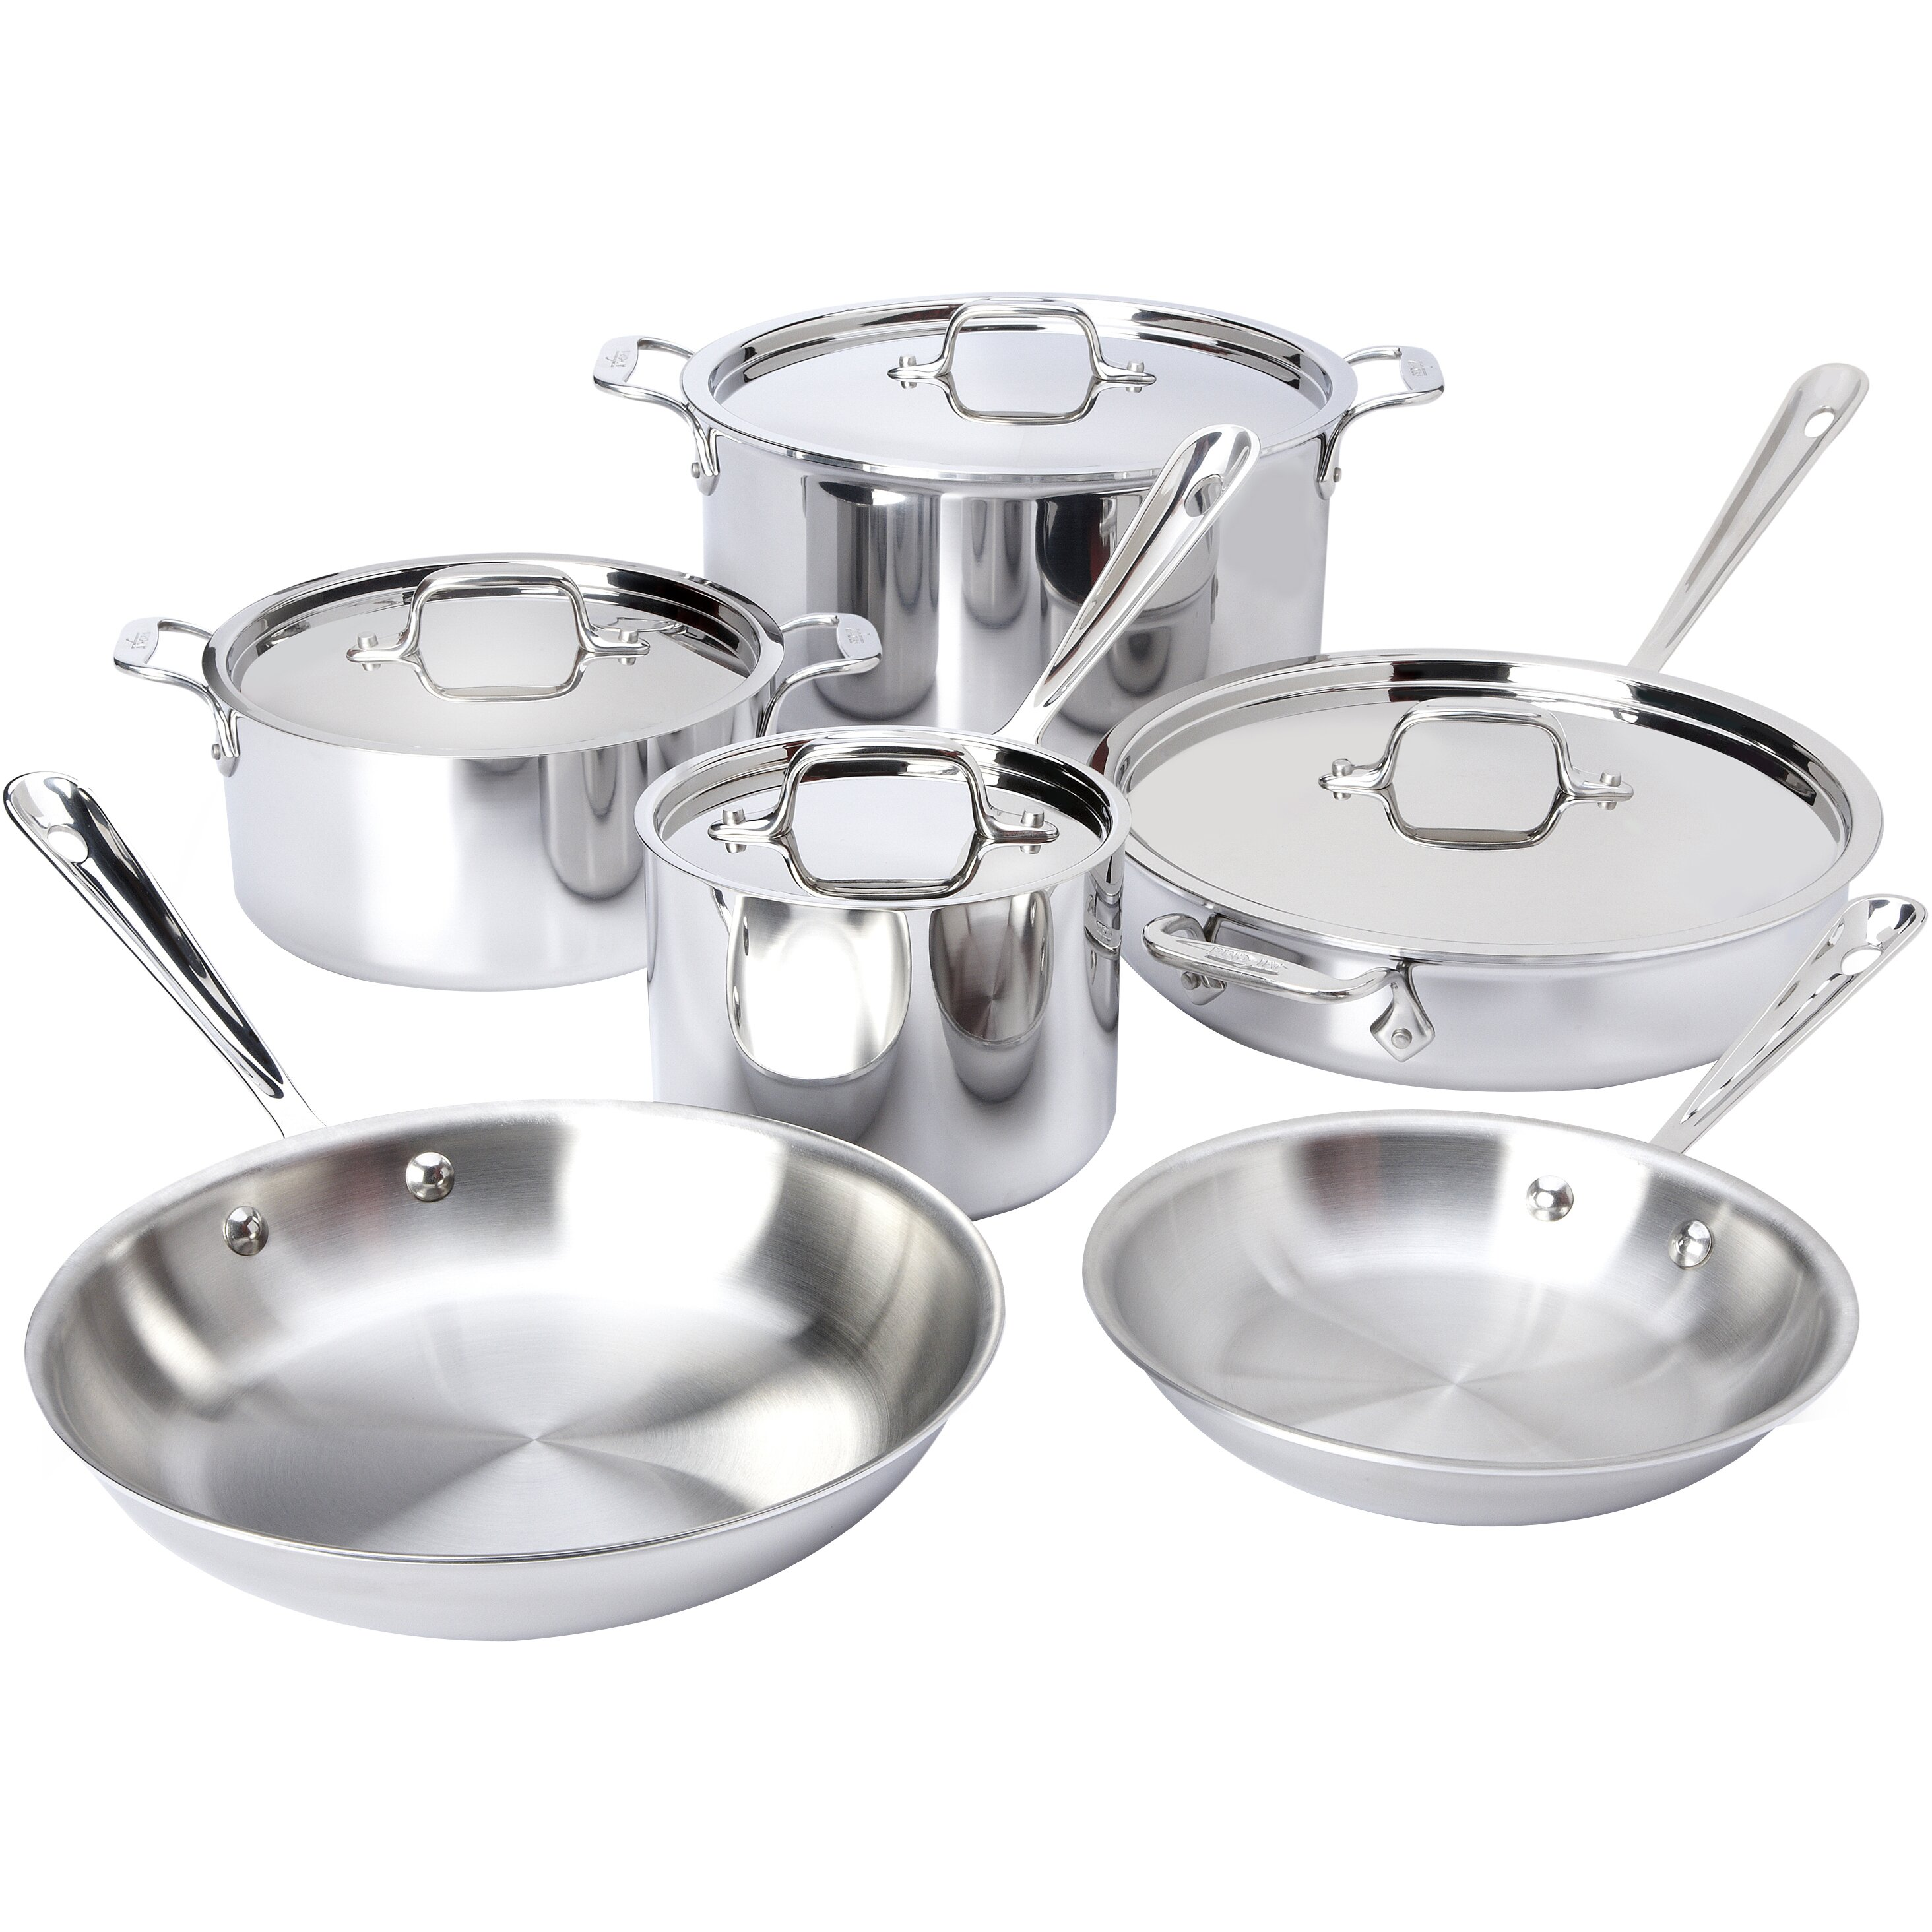 All clad stainless steel cookware sets - All Clad Stainless Steel 10 Piece Cookware Set